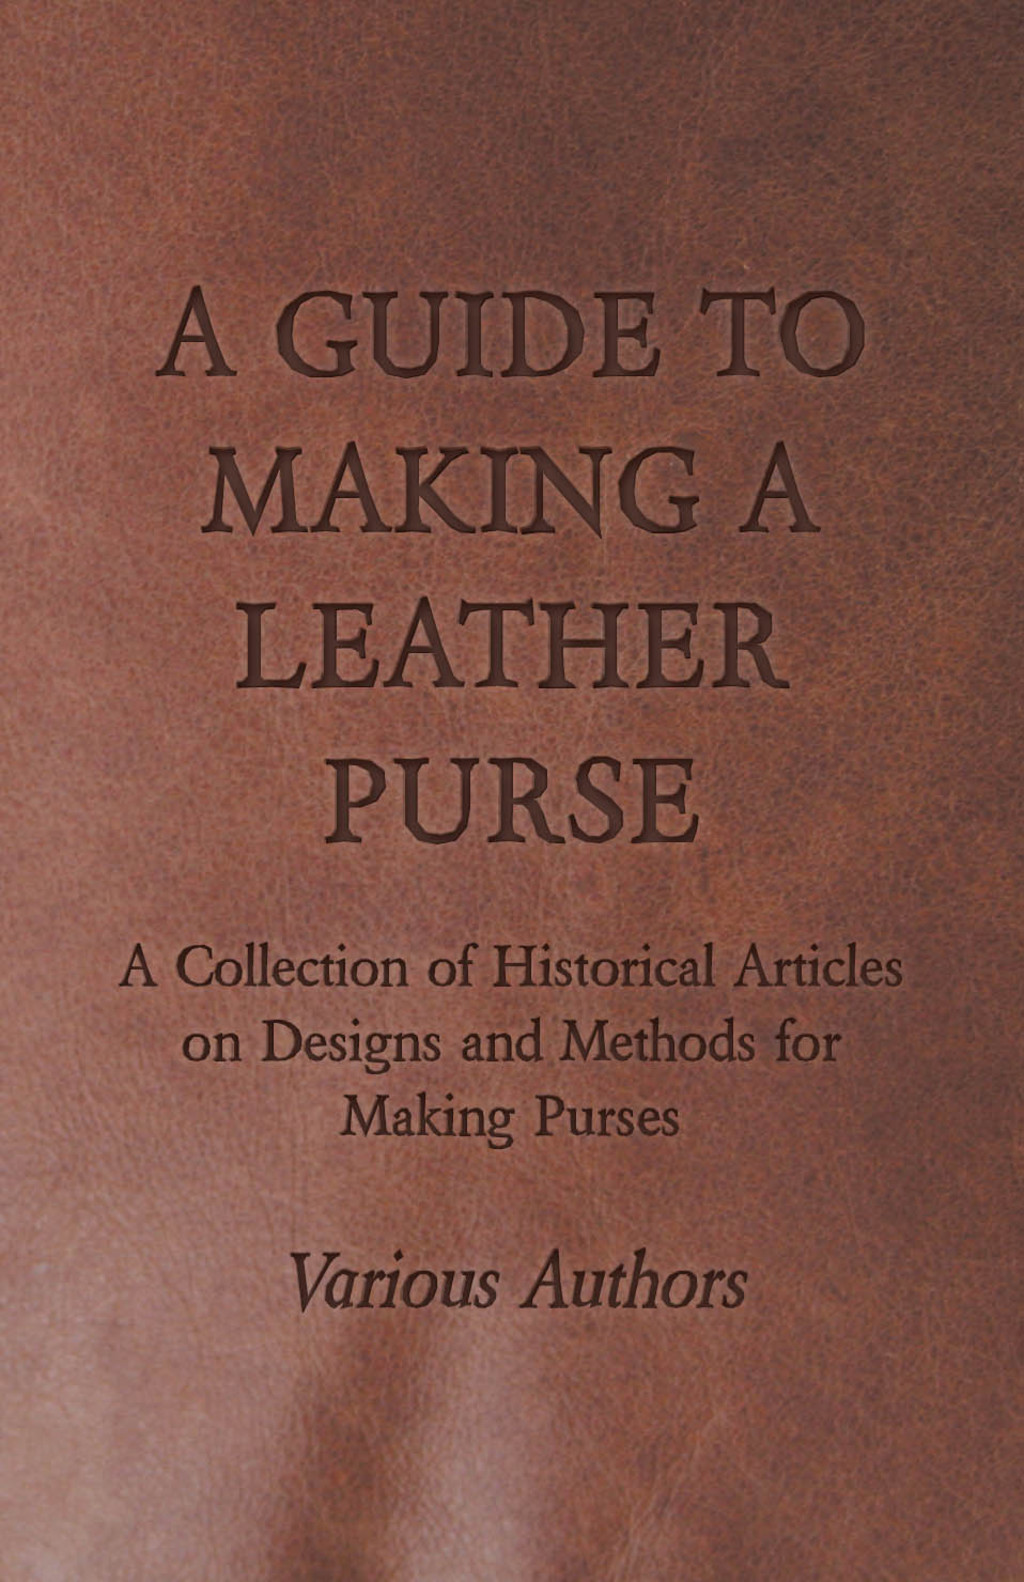 A Guide to Making a Leather Purse - A Collection of Historical Articles on Designs and Methods for Making Purses (eBook) (9781473356900) photo